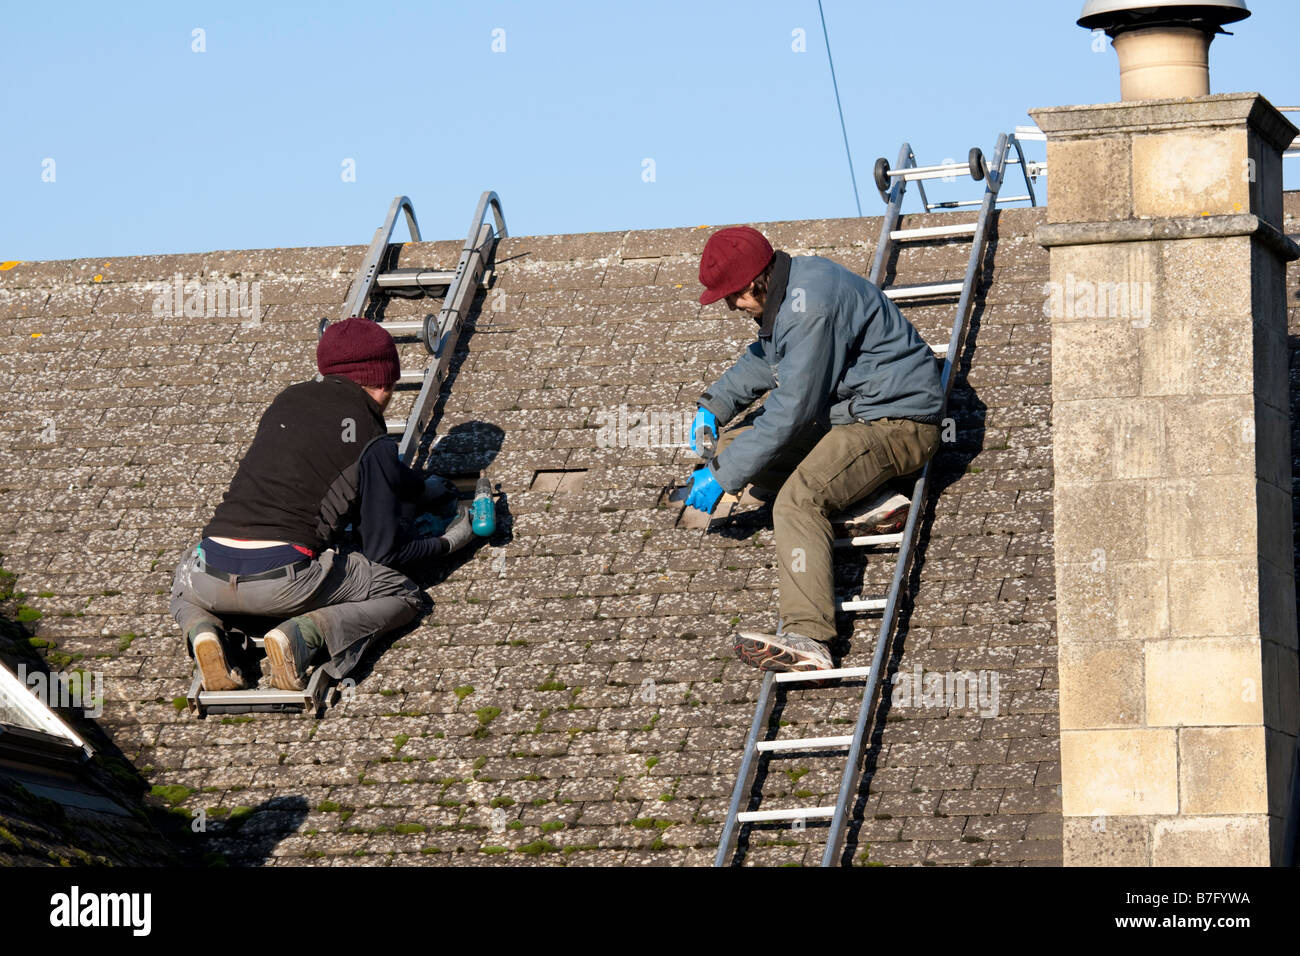 Installing solar thermal evacuated tubes on tiled roof Cotswolds UK - Stock Image